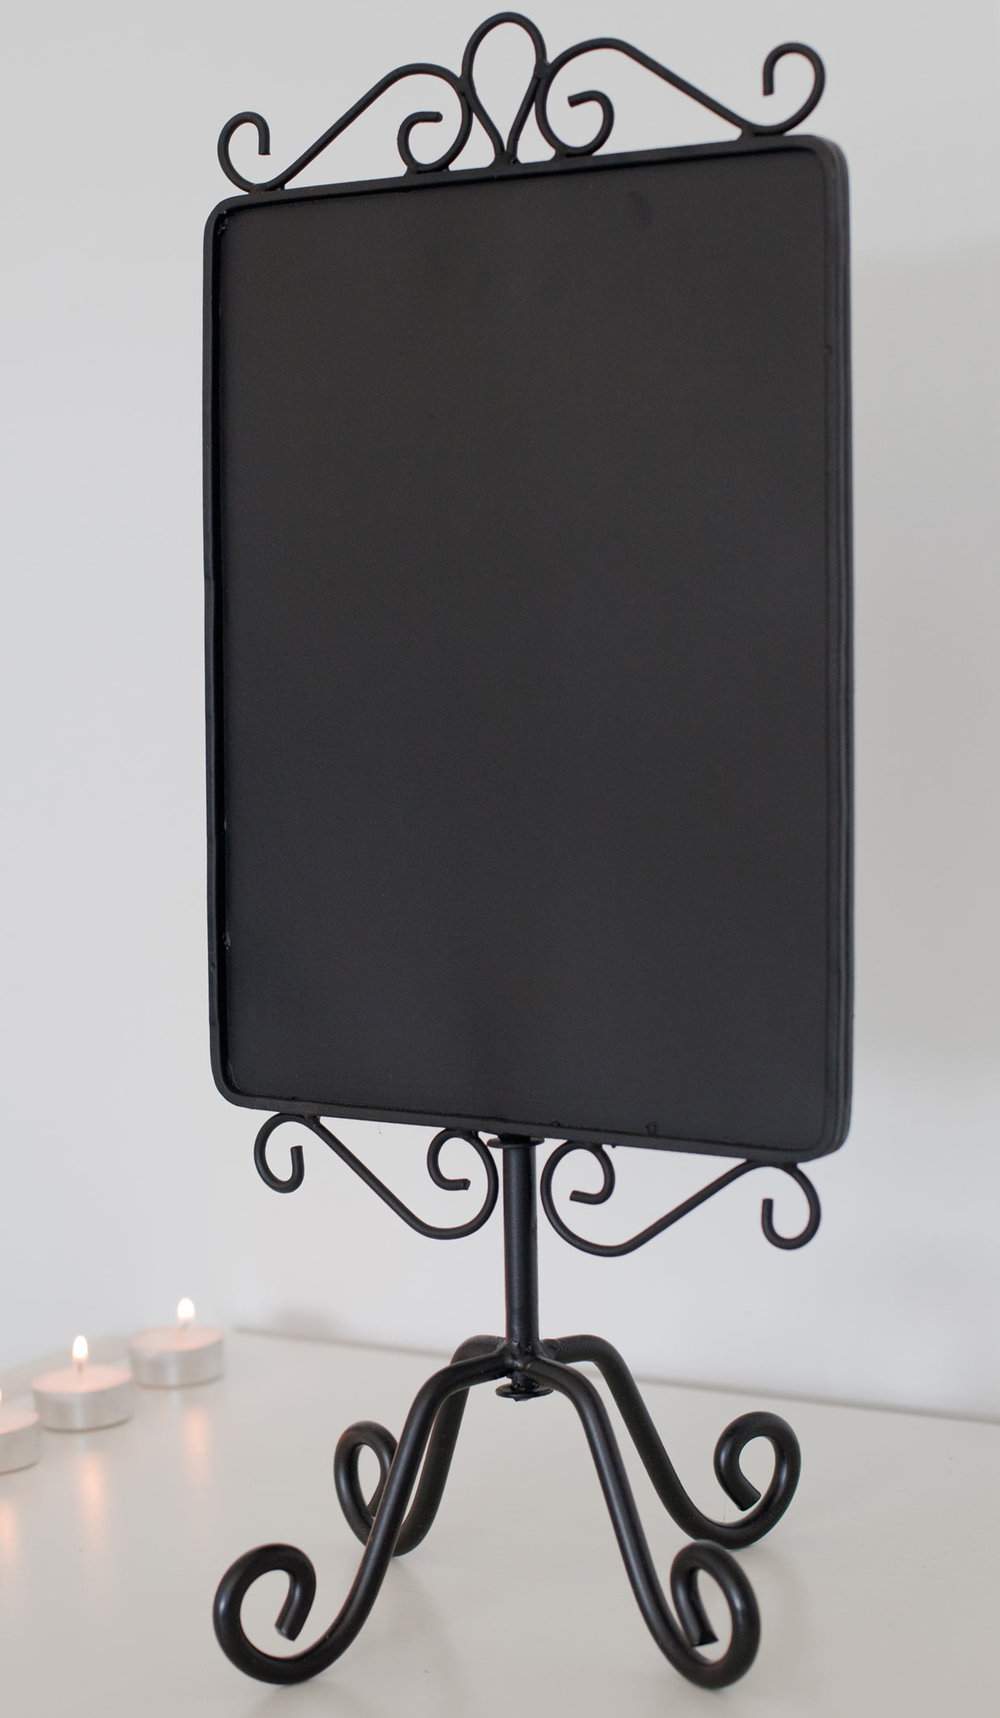 Blackboard on Stand - Sml